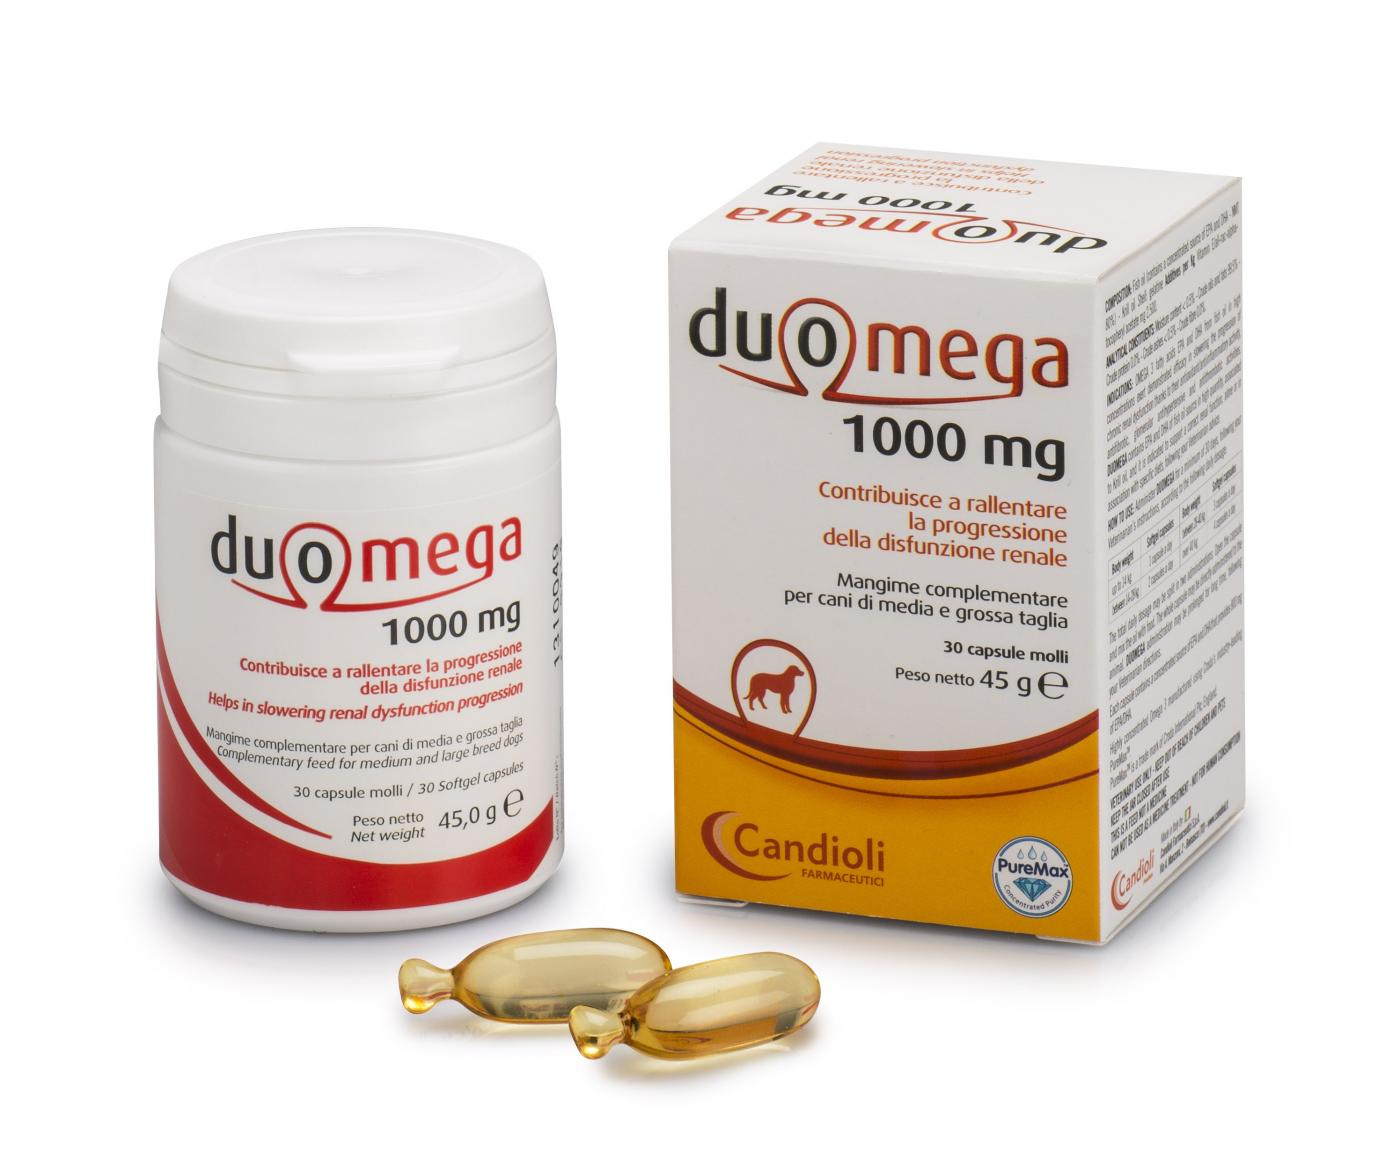 Duomega dogs 30 softgel capsules 1000mg - velký pes